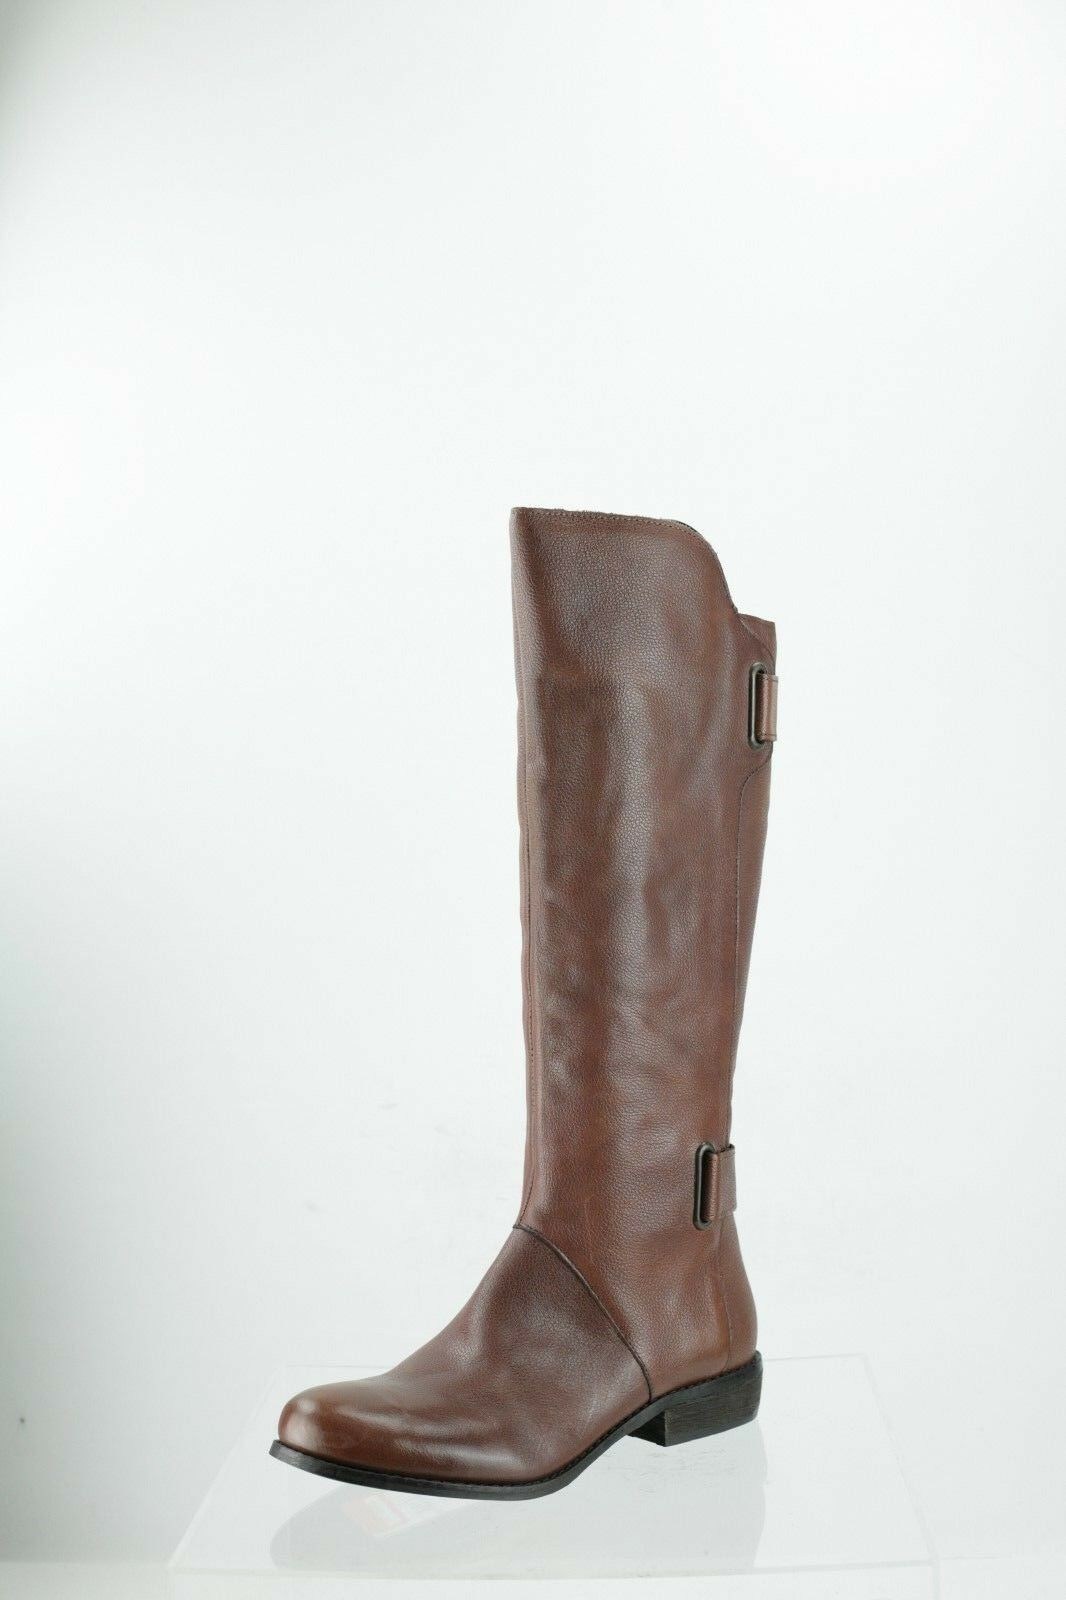 Ciao Bella Brooklyn Brown Leather Knee High Boots Women's Shoes Size 6 M NEW